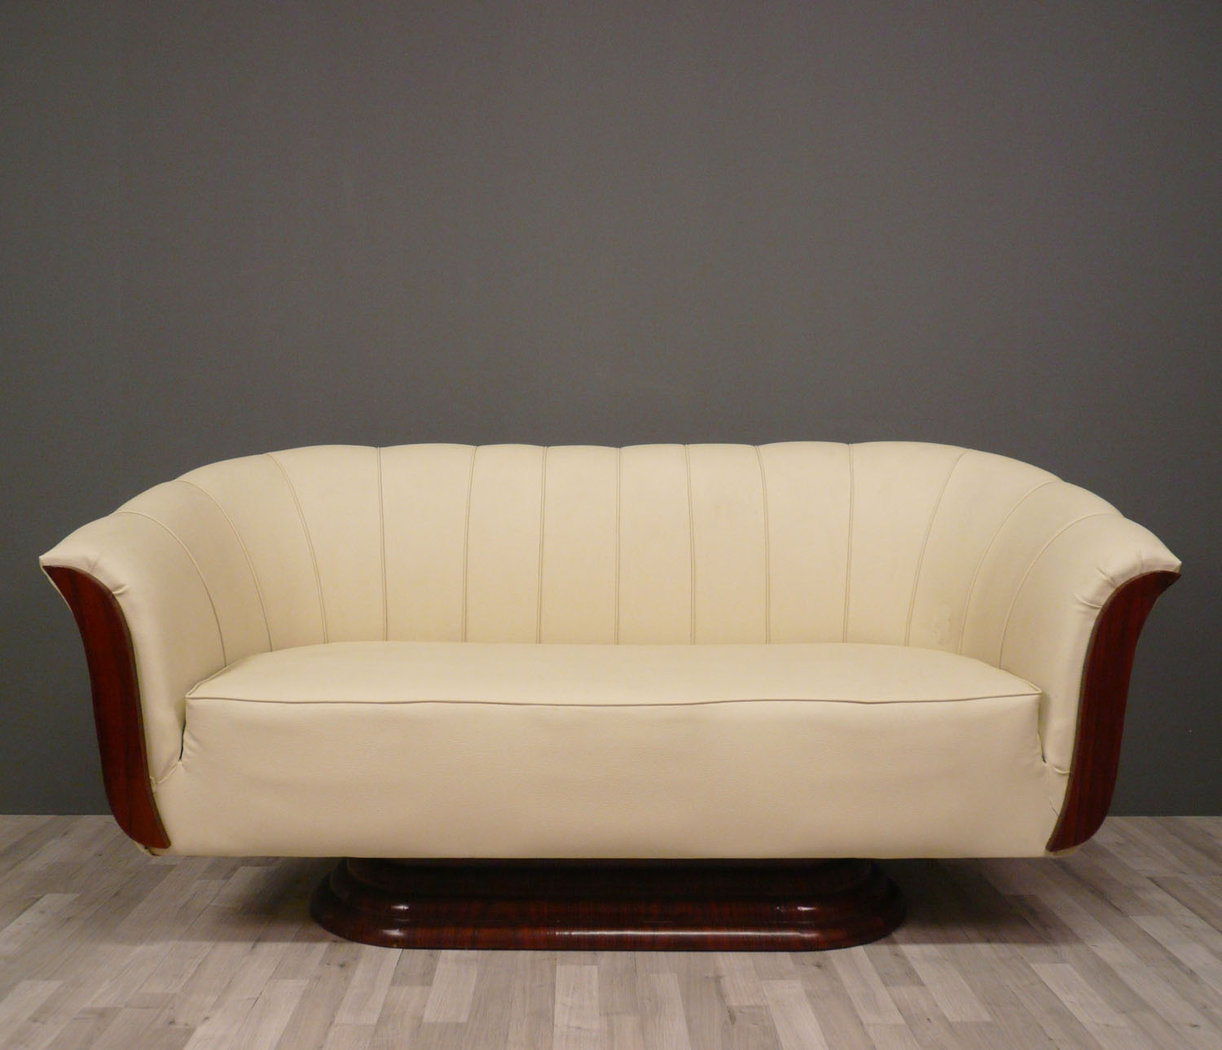 Art Deco Style Sofas Art Deco Sofa - Art Deco Furniture